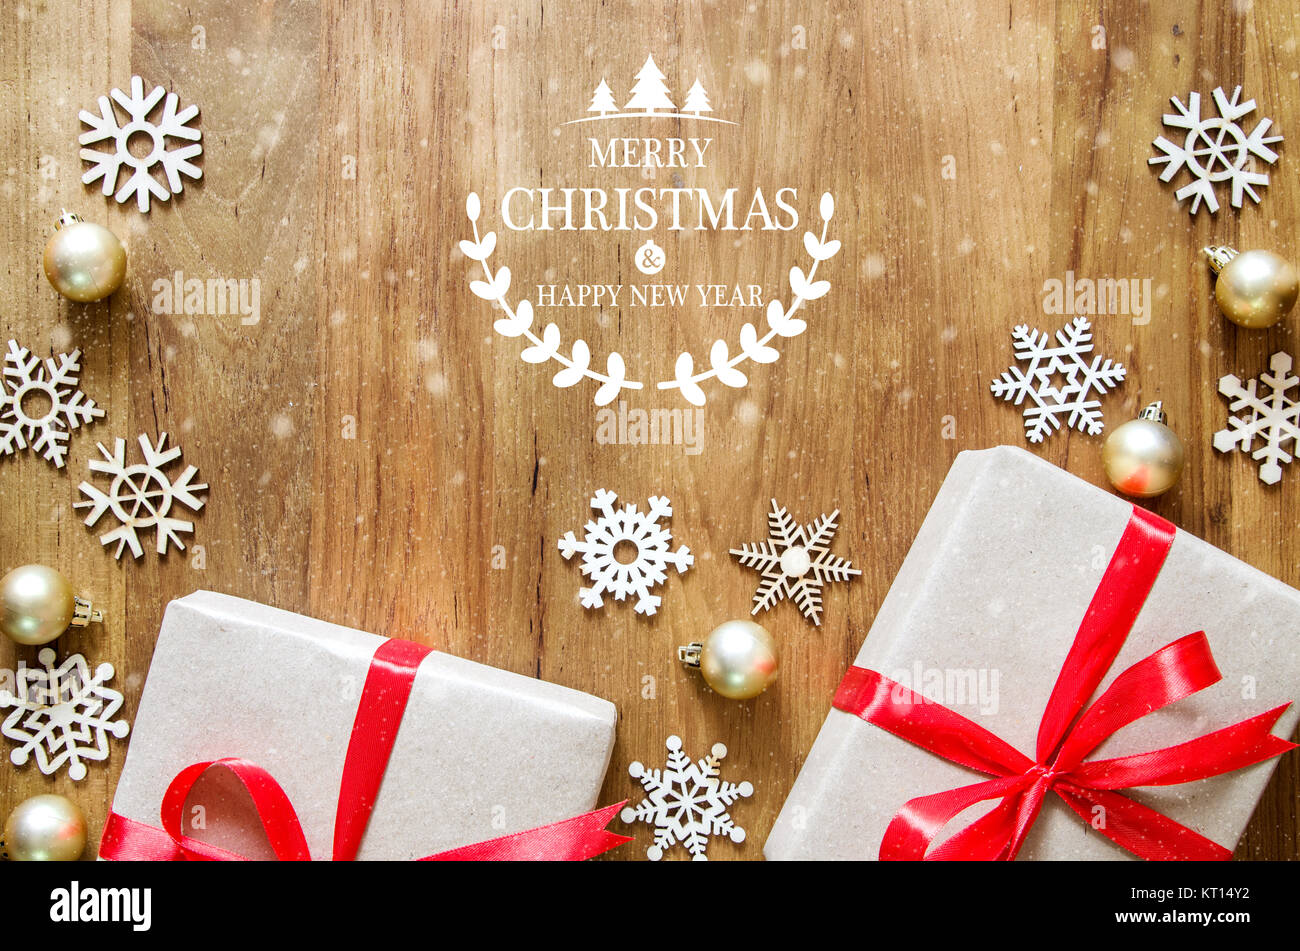 christmas and new year theme background merry christmas and happy new year text on wooden table with gift boxes and decoration